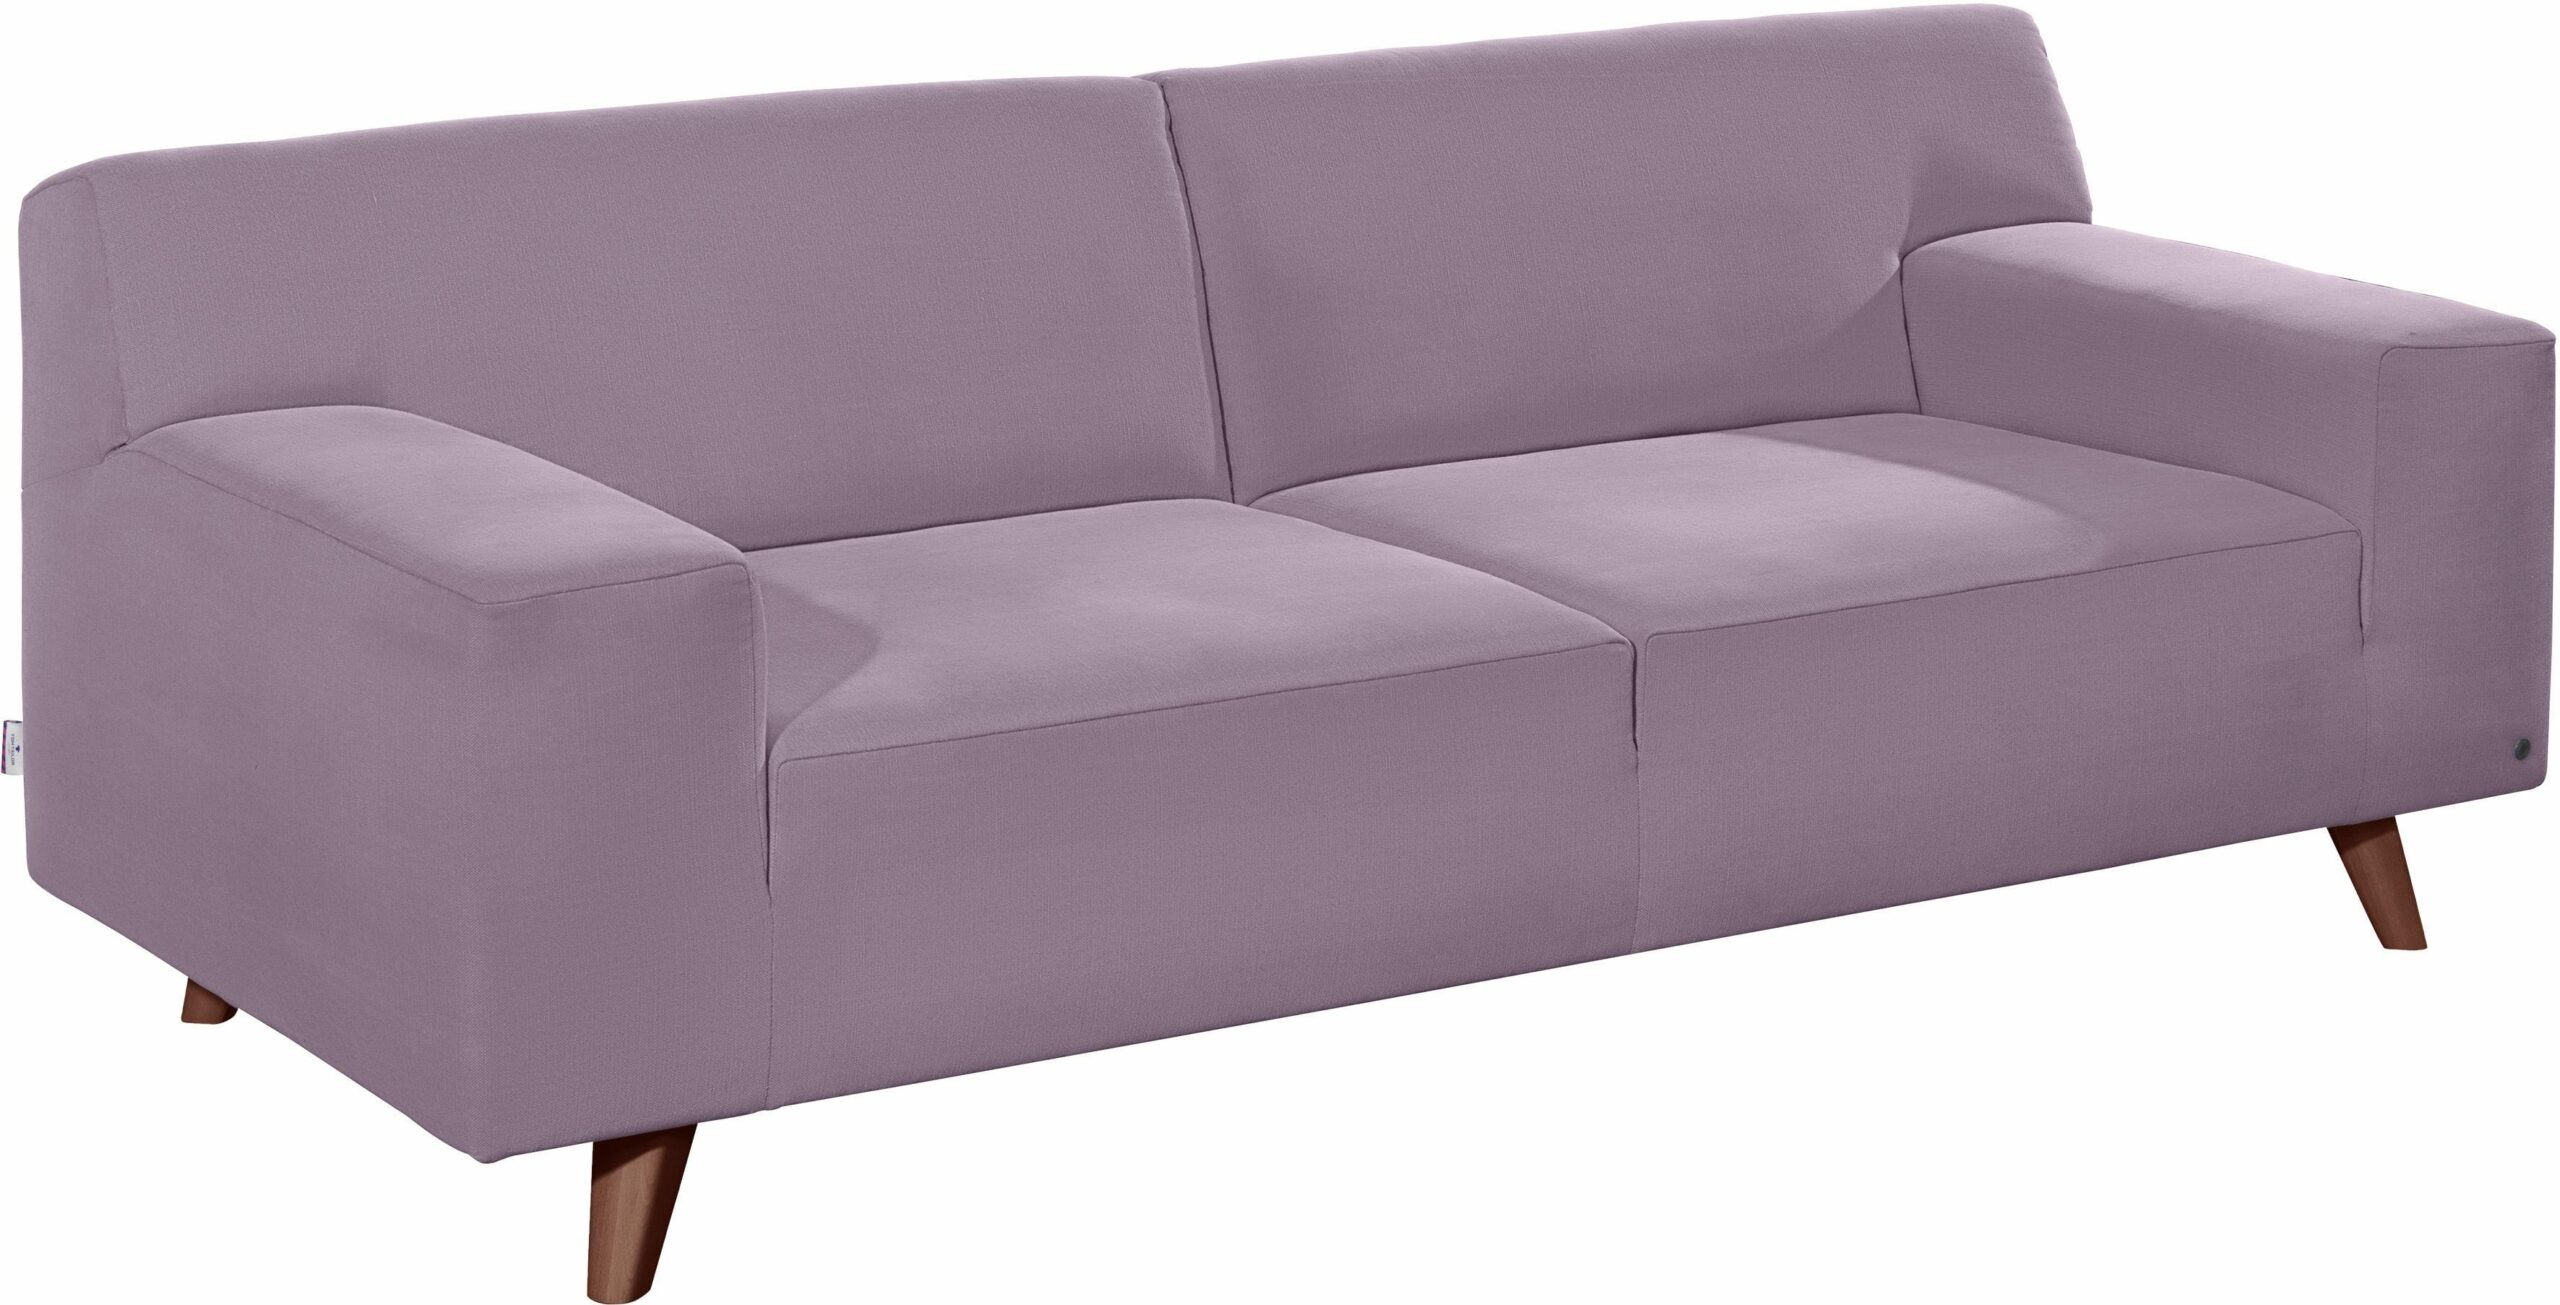 Full Size of Tom Tailor Sofa Nordic Chic Cube West Coast Heaven Xl Style Casual Couch Colors Pure Elements 2 Aus Matratzen Karup U Form Xxl Konfigurator Copperfield Home Sofa Tom Tailor Sofa